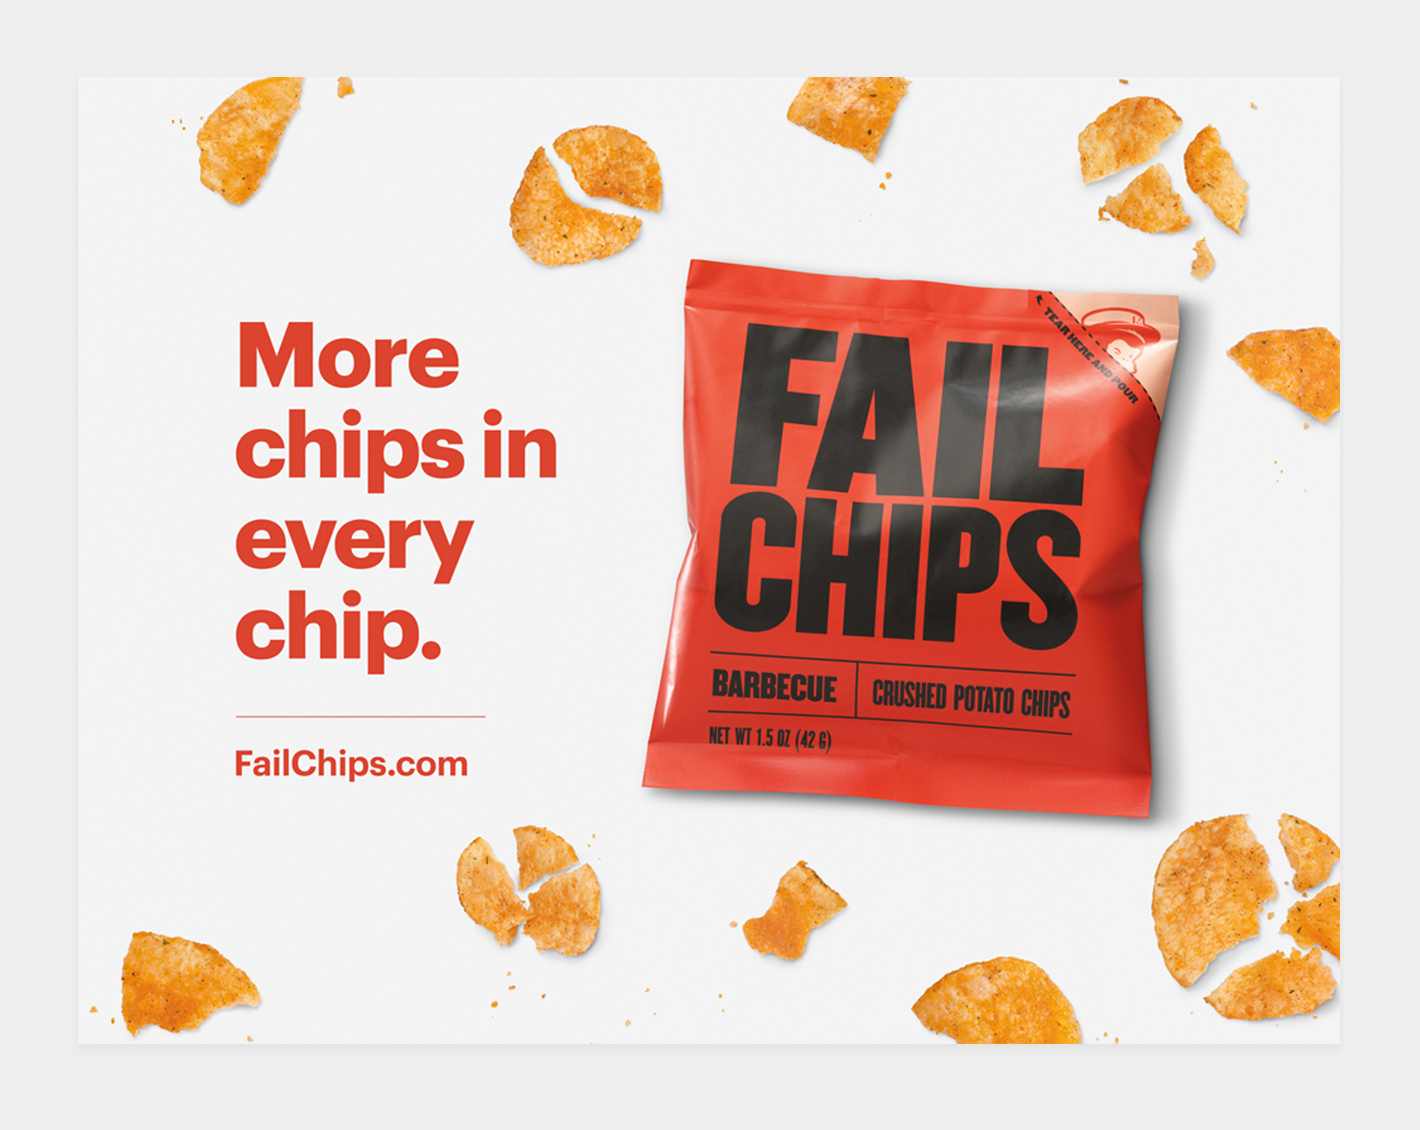 FailChips copy 5